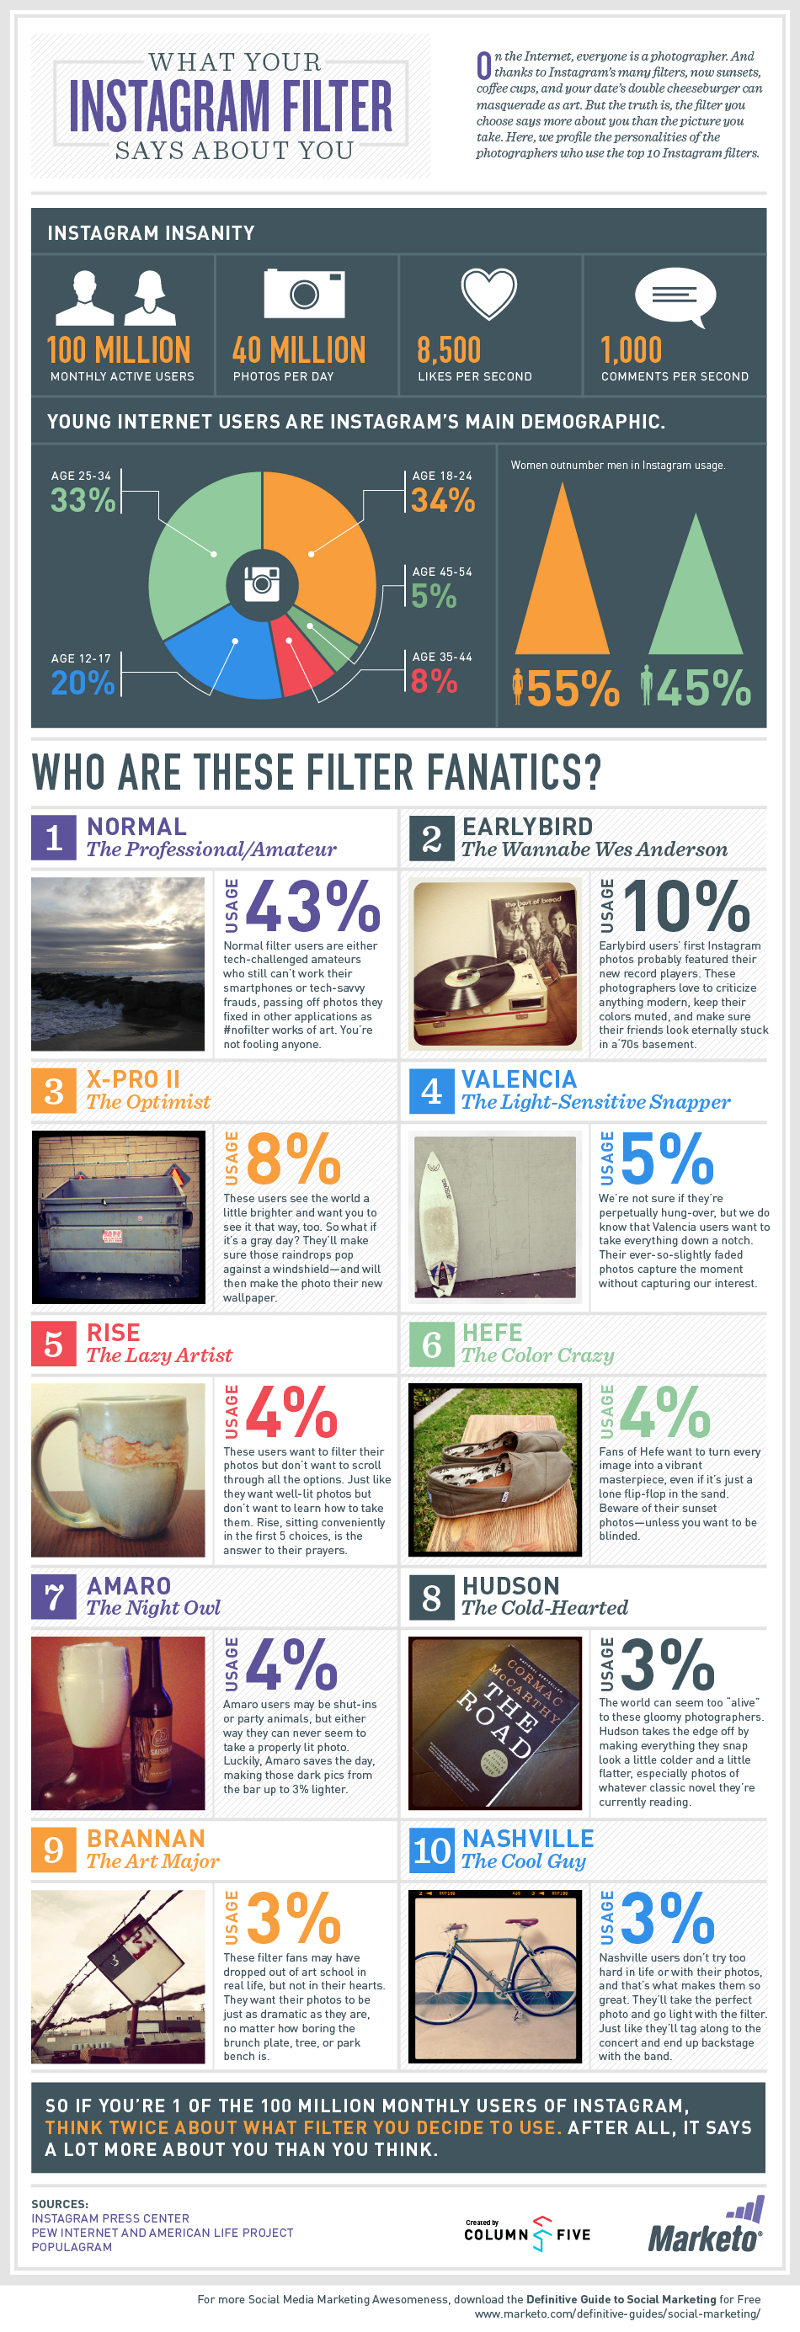 10 Most Popular Instagram Photo Filters